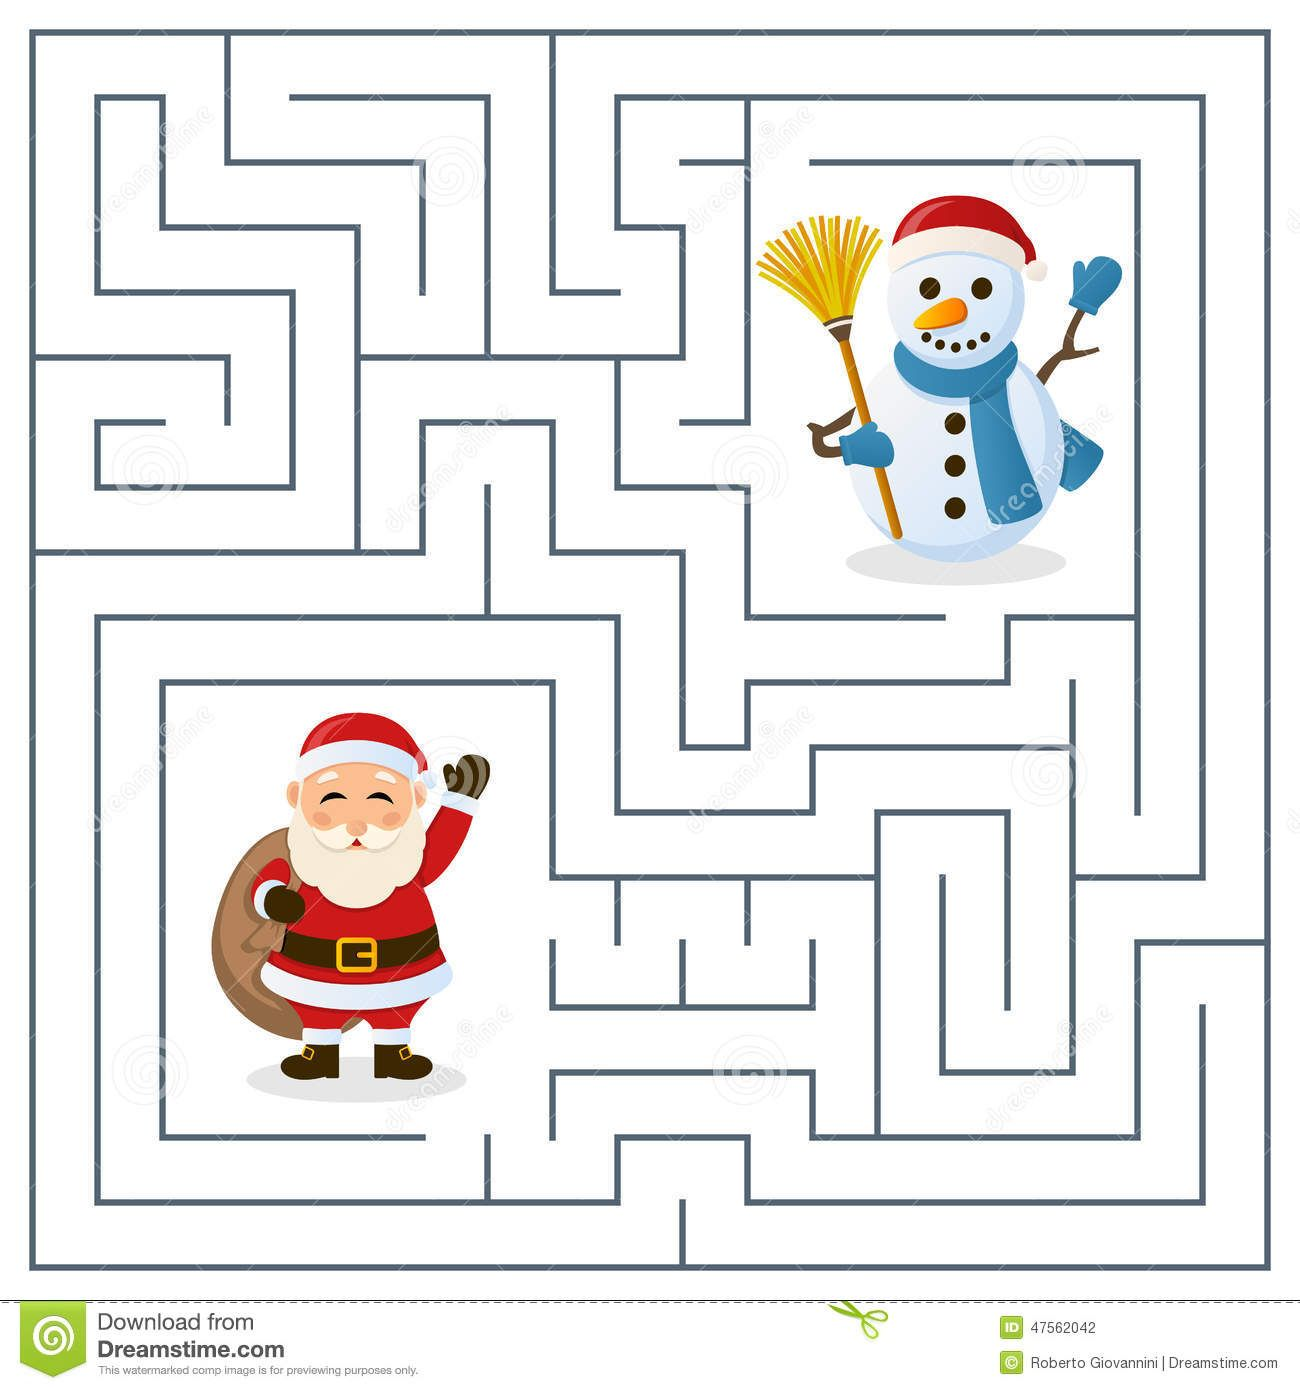 Santa Claus Amp Snowman Maze For Kids